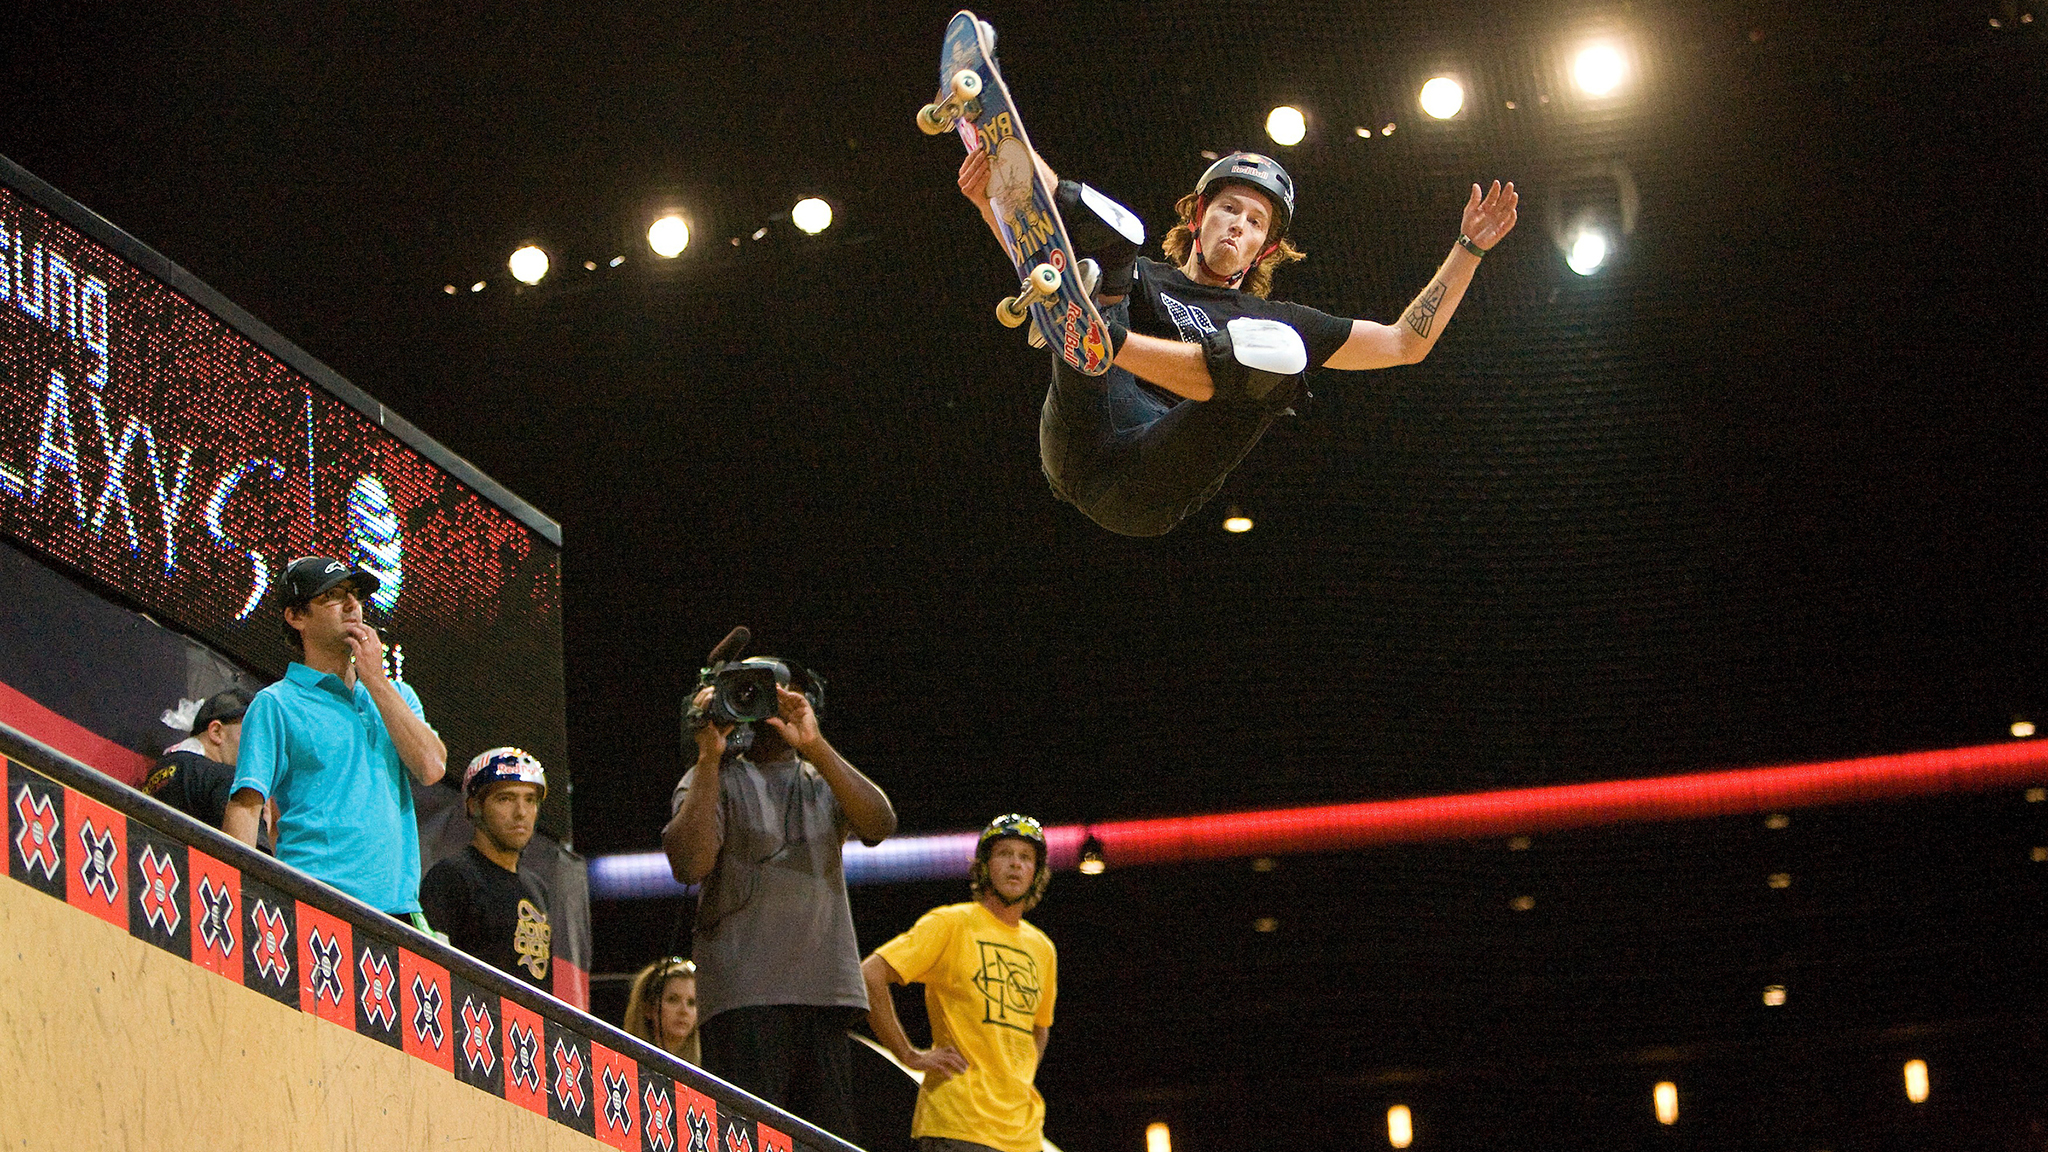 X Games Shaun White Skateboarding